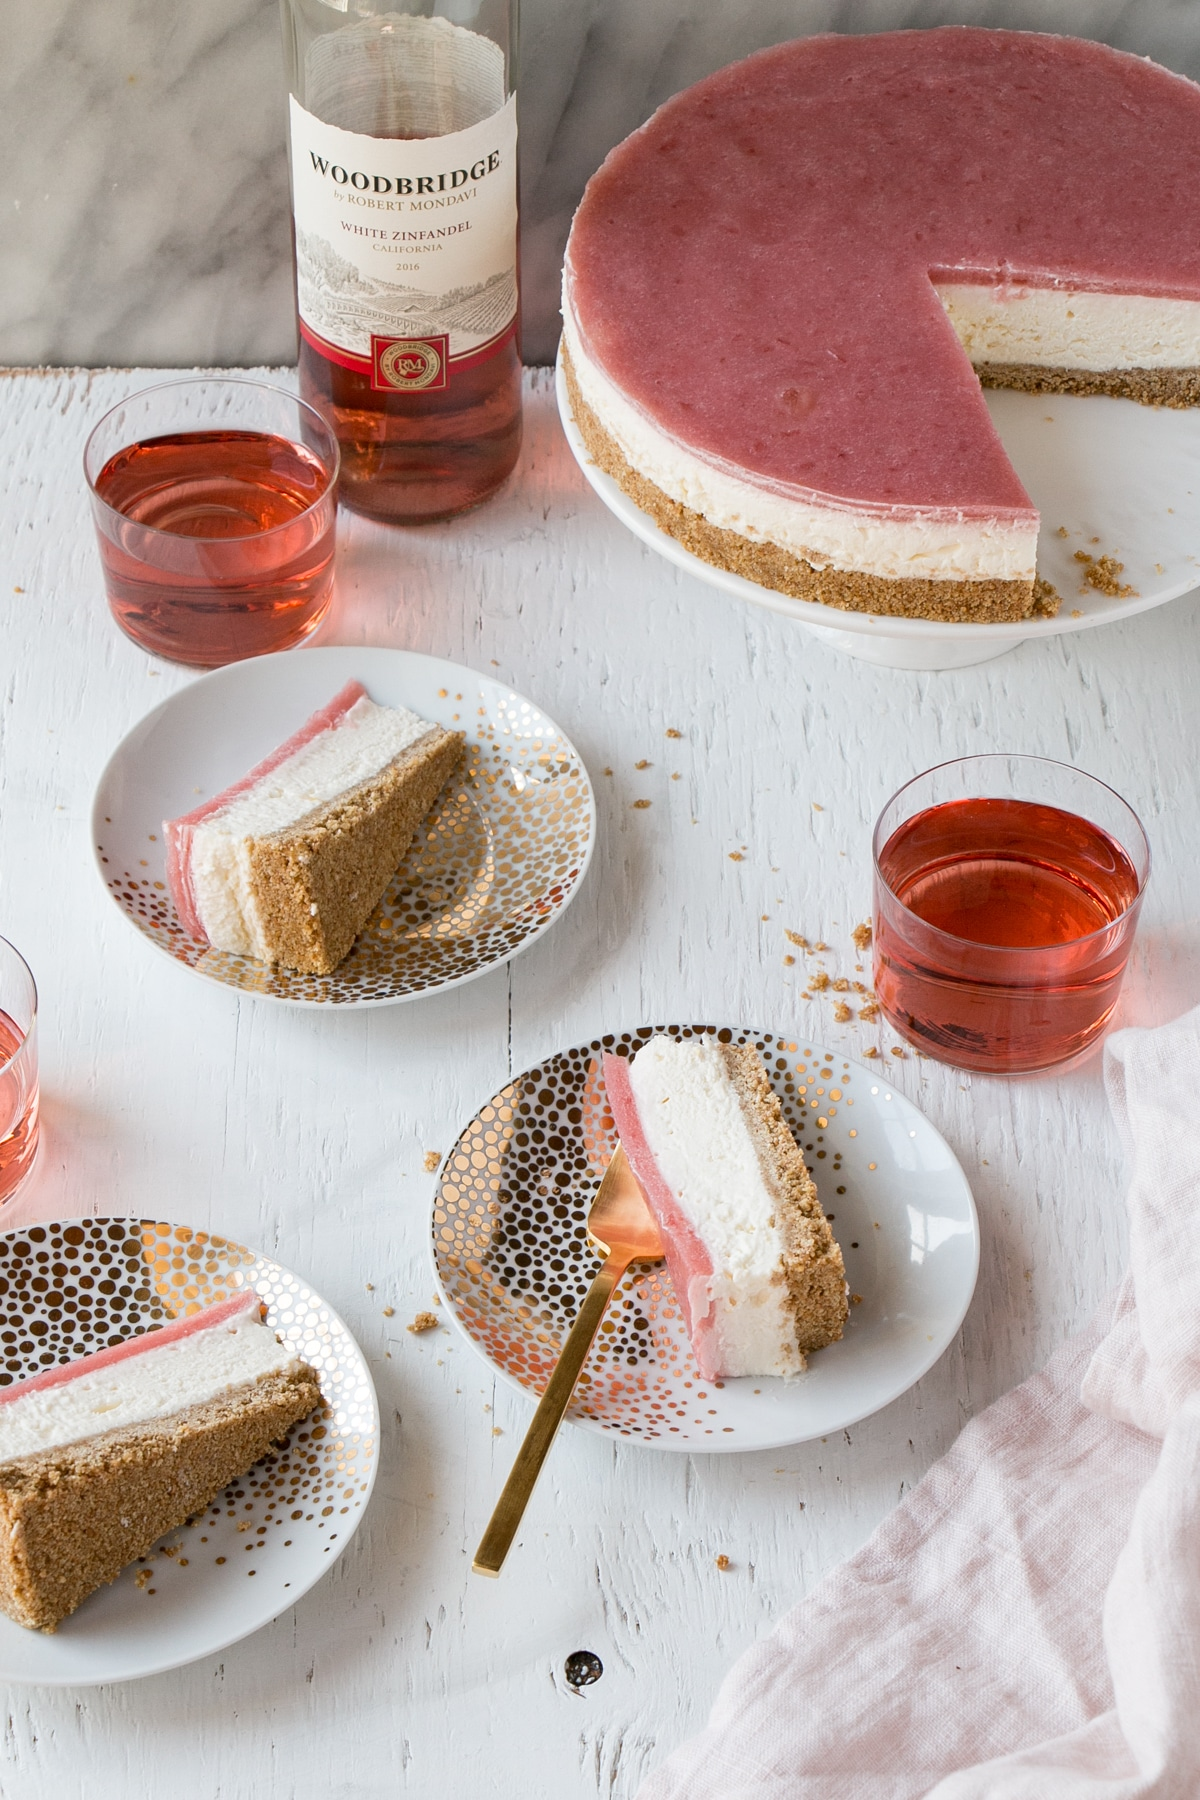 Slices of a No Bake Rhubarb Cheesecake on plates and glasses of rose wine.